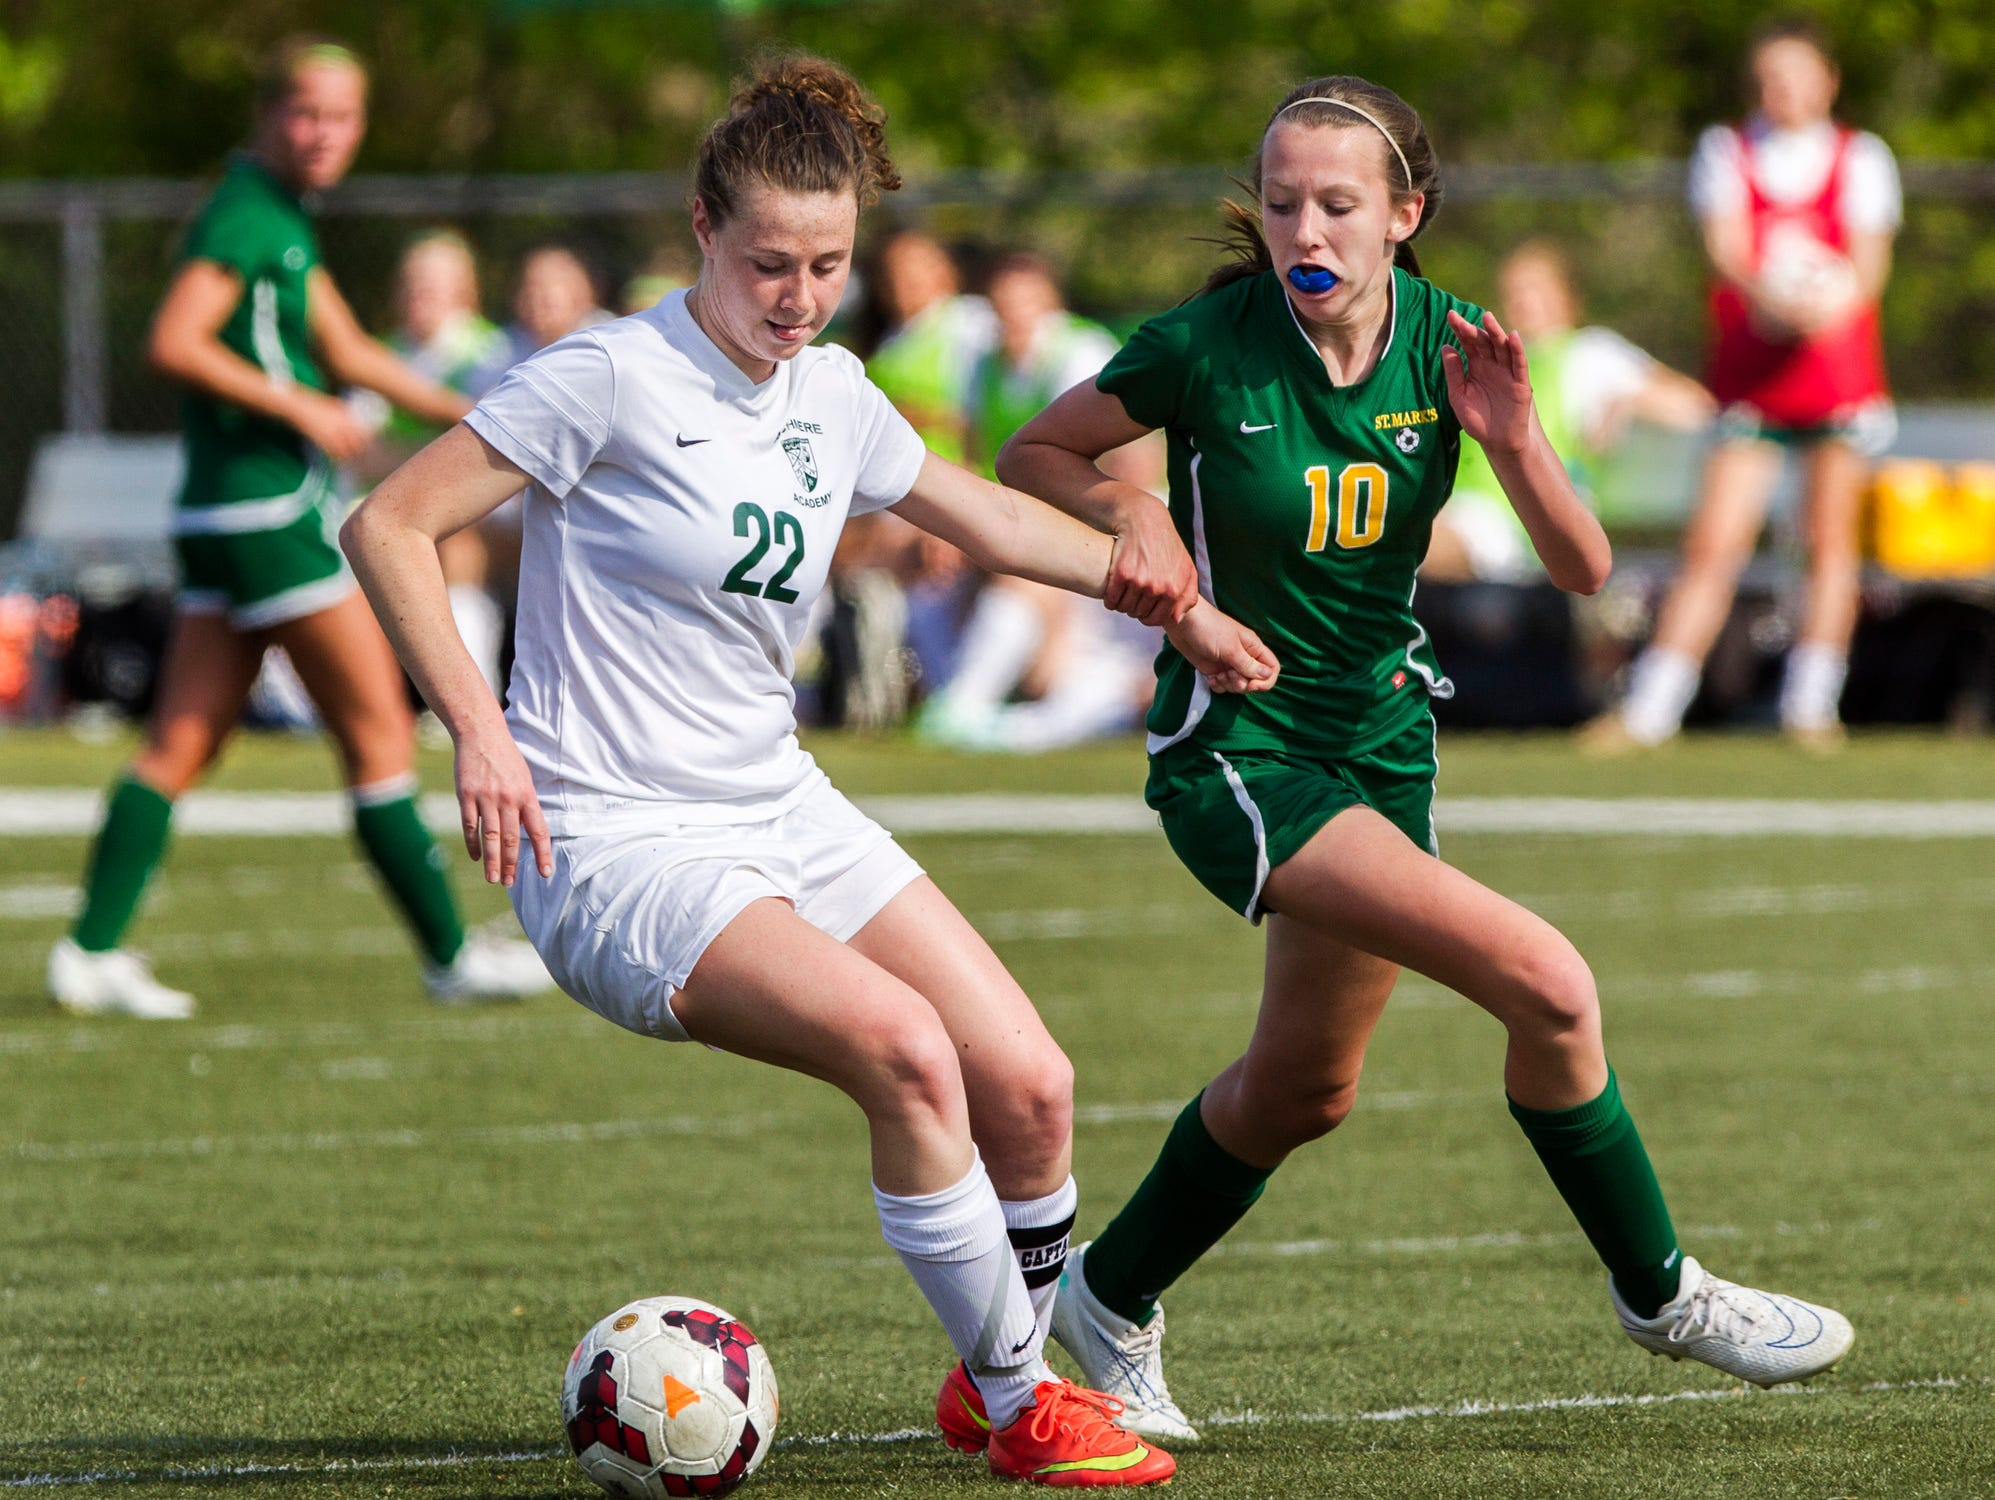 Archmere's Alana Bradley (No. 22) and St. Mark's Hannah Schepers (No. 10) fight for position on the ball during a game at Archmere on Wednesday afternoon. Archmere defeated St. Mark's by a score of 2-1.